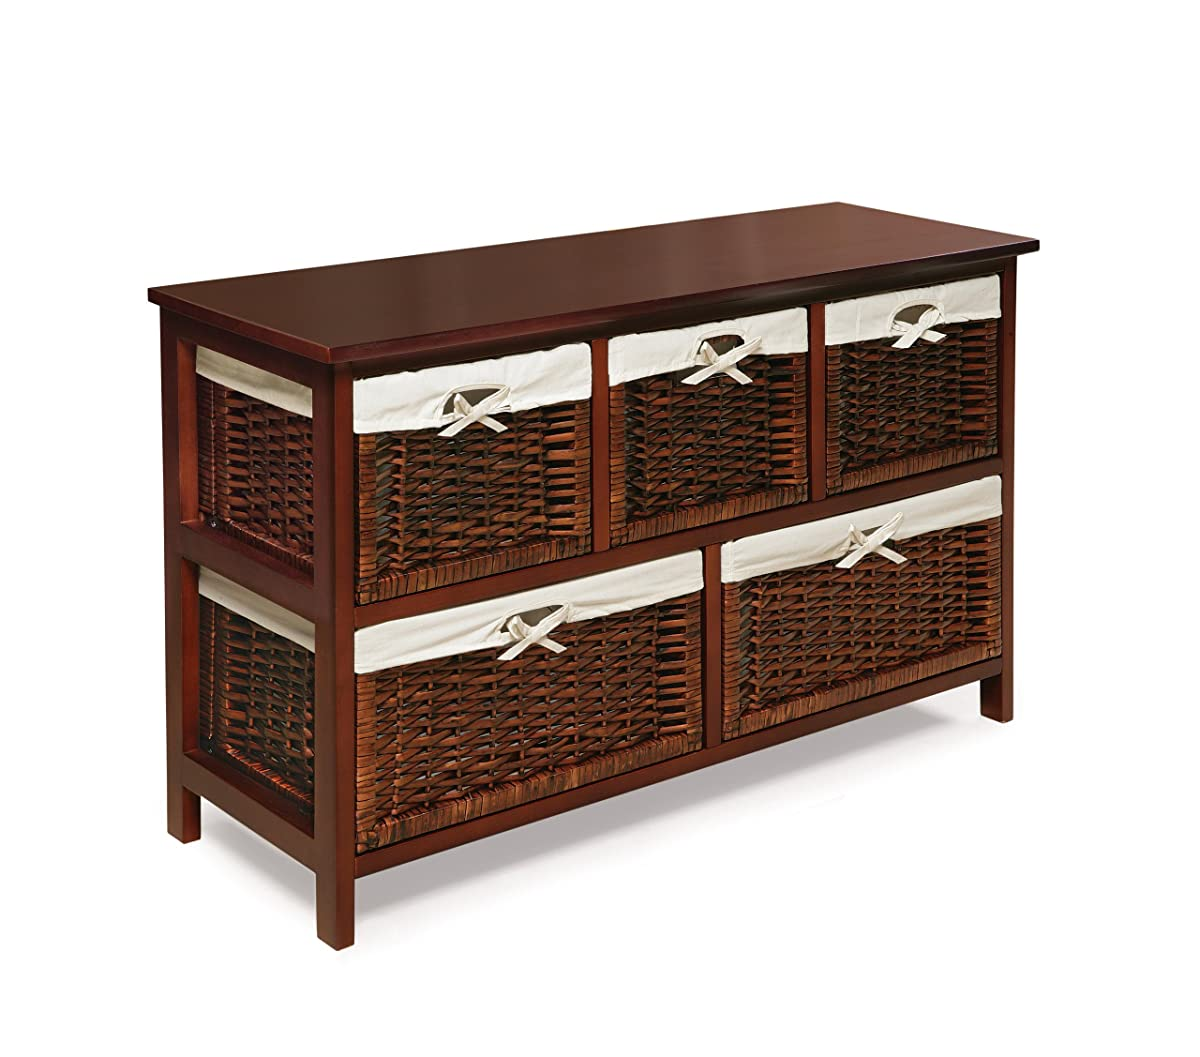 Badger Basket Five Basket Storage Unit with Wicker Baskets, Cherry